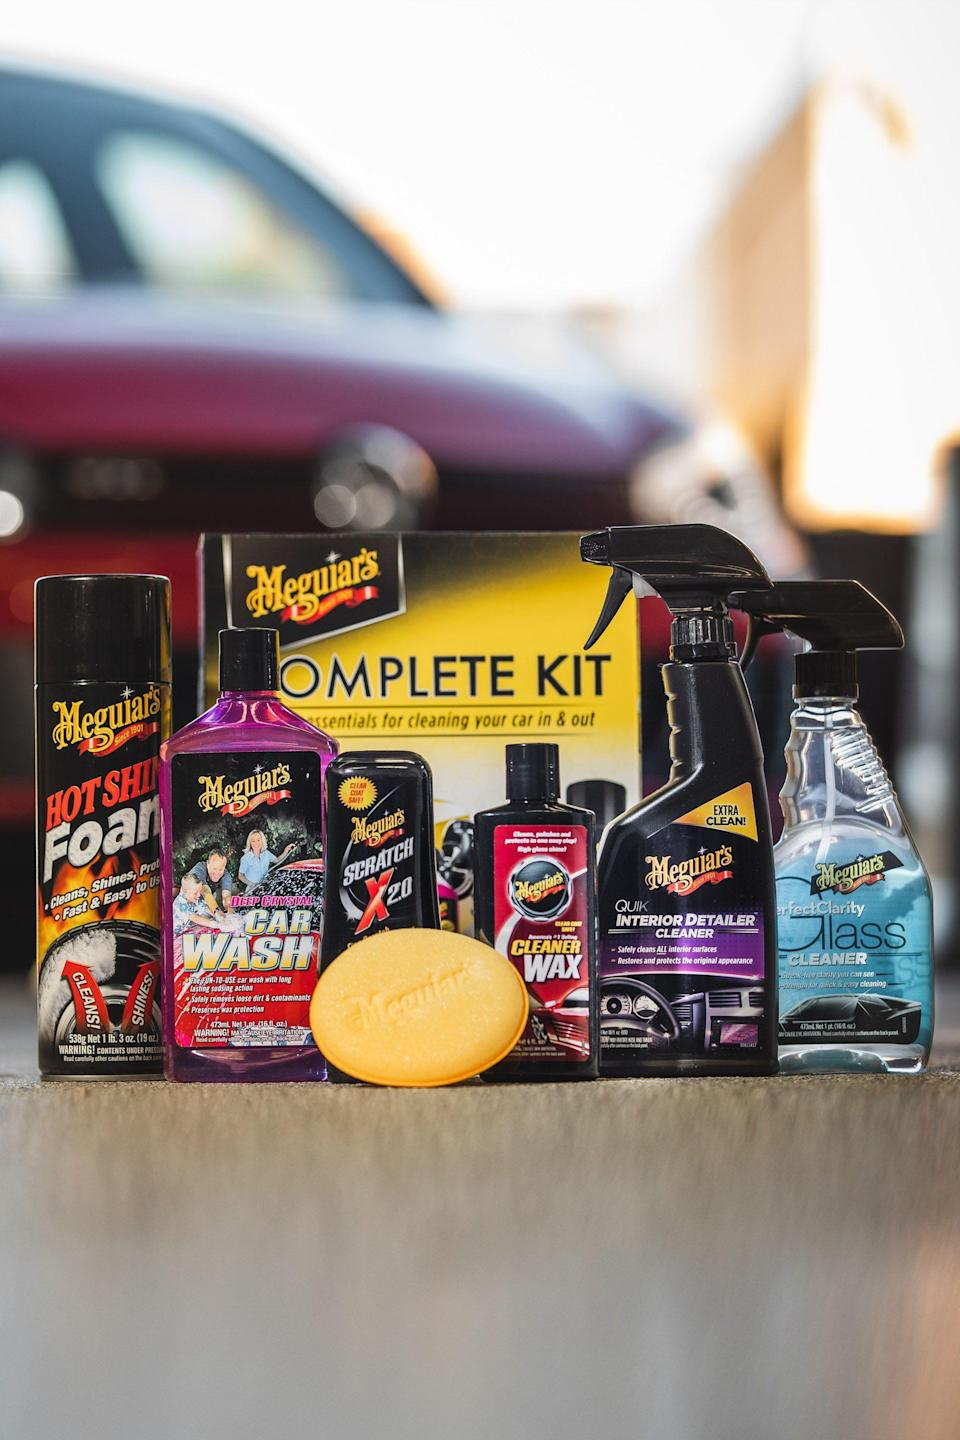 "<p><strong>Meguiar's</strong></p><p>walmart.com</p><p><strong>$23.88</strong></p><p><a href=""https://go.redirectingat.com?id=74968X1596630&url=https%3A%2F%2Fwww.walmart.com%2Fip%2F51575291&sref=https%3A%2F%2Fwww.caranddriver.com%2Fshopping-advice%2Fg34727934%2Fbest-car-gifts-teens%2F"" rel=""nofollow noopener"" target=""_blank"" data-ylk=""slk:Buy Now"" class=""link rapid-noclick-resp"">Buy Now</a></p><p>We wouldn't be surprised if your car-obsessed teen is also a total neat freak about his or her car—a lot of us Car and Driver editors are too! We'd recommend starting them out with this package of <a href=""https://www.caranddriver.com/shopping-advice/g25306083/meguiars-car-care-kits-sale/"" rel=""nofollow noopener"" target=""_blank"" data-ylk=""slk:car detailing essentials from Meguiar's"" class=""link rapid-noclick-resp"">car detailing essentials from Meguiar's</a>, which includes everything they need to shine up their ride.</p>"